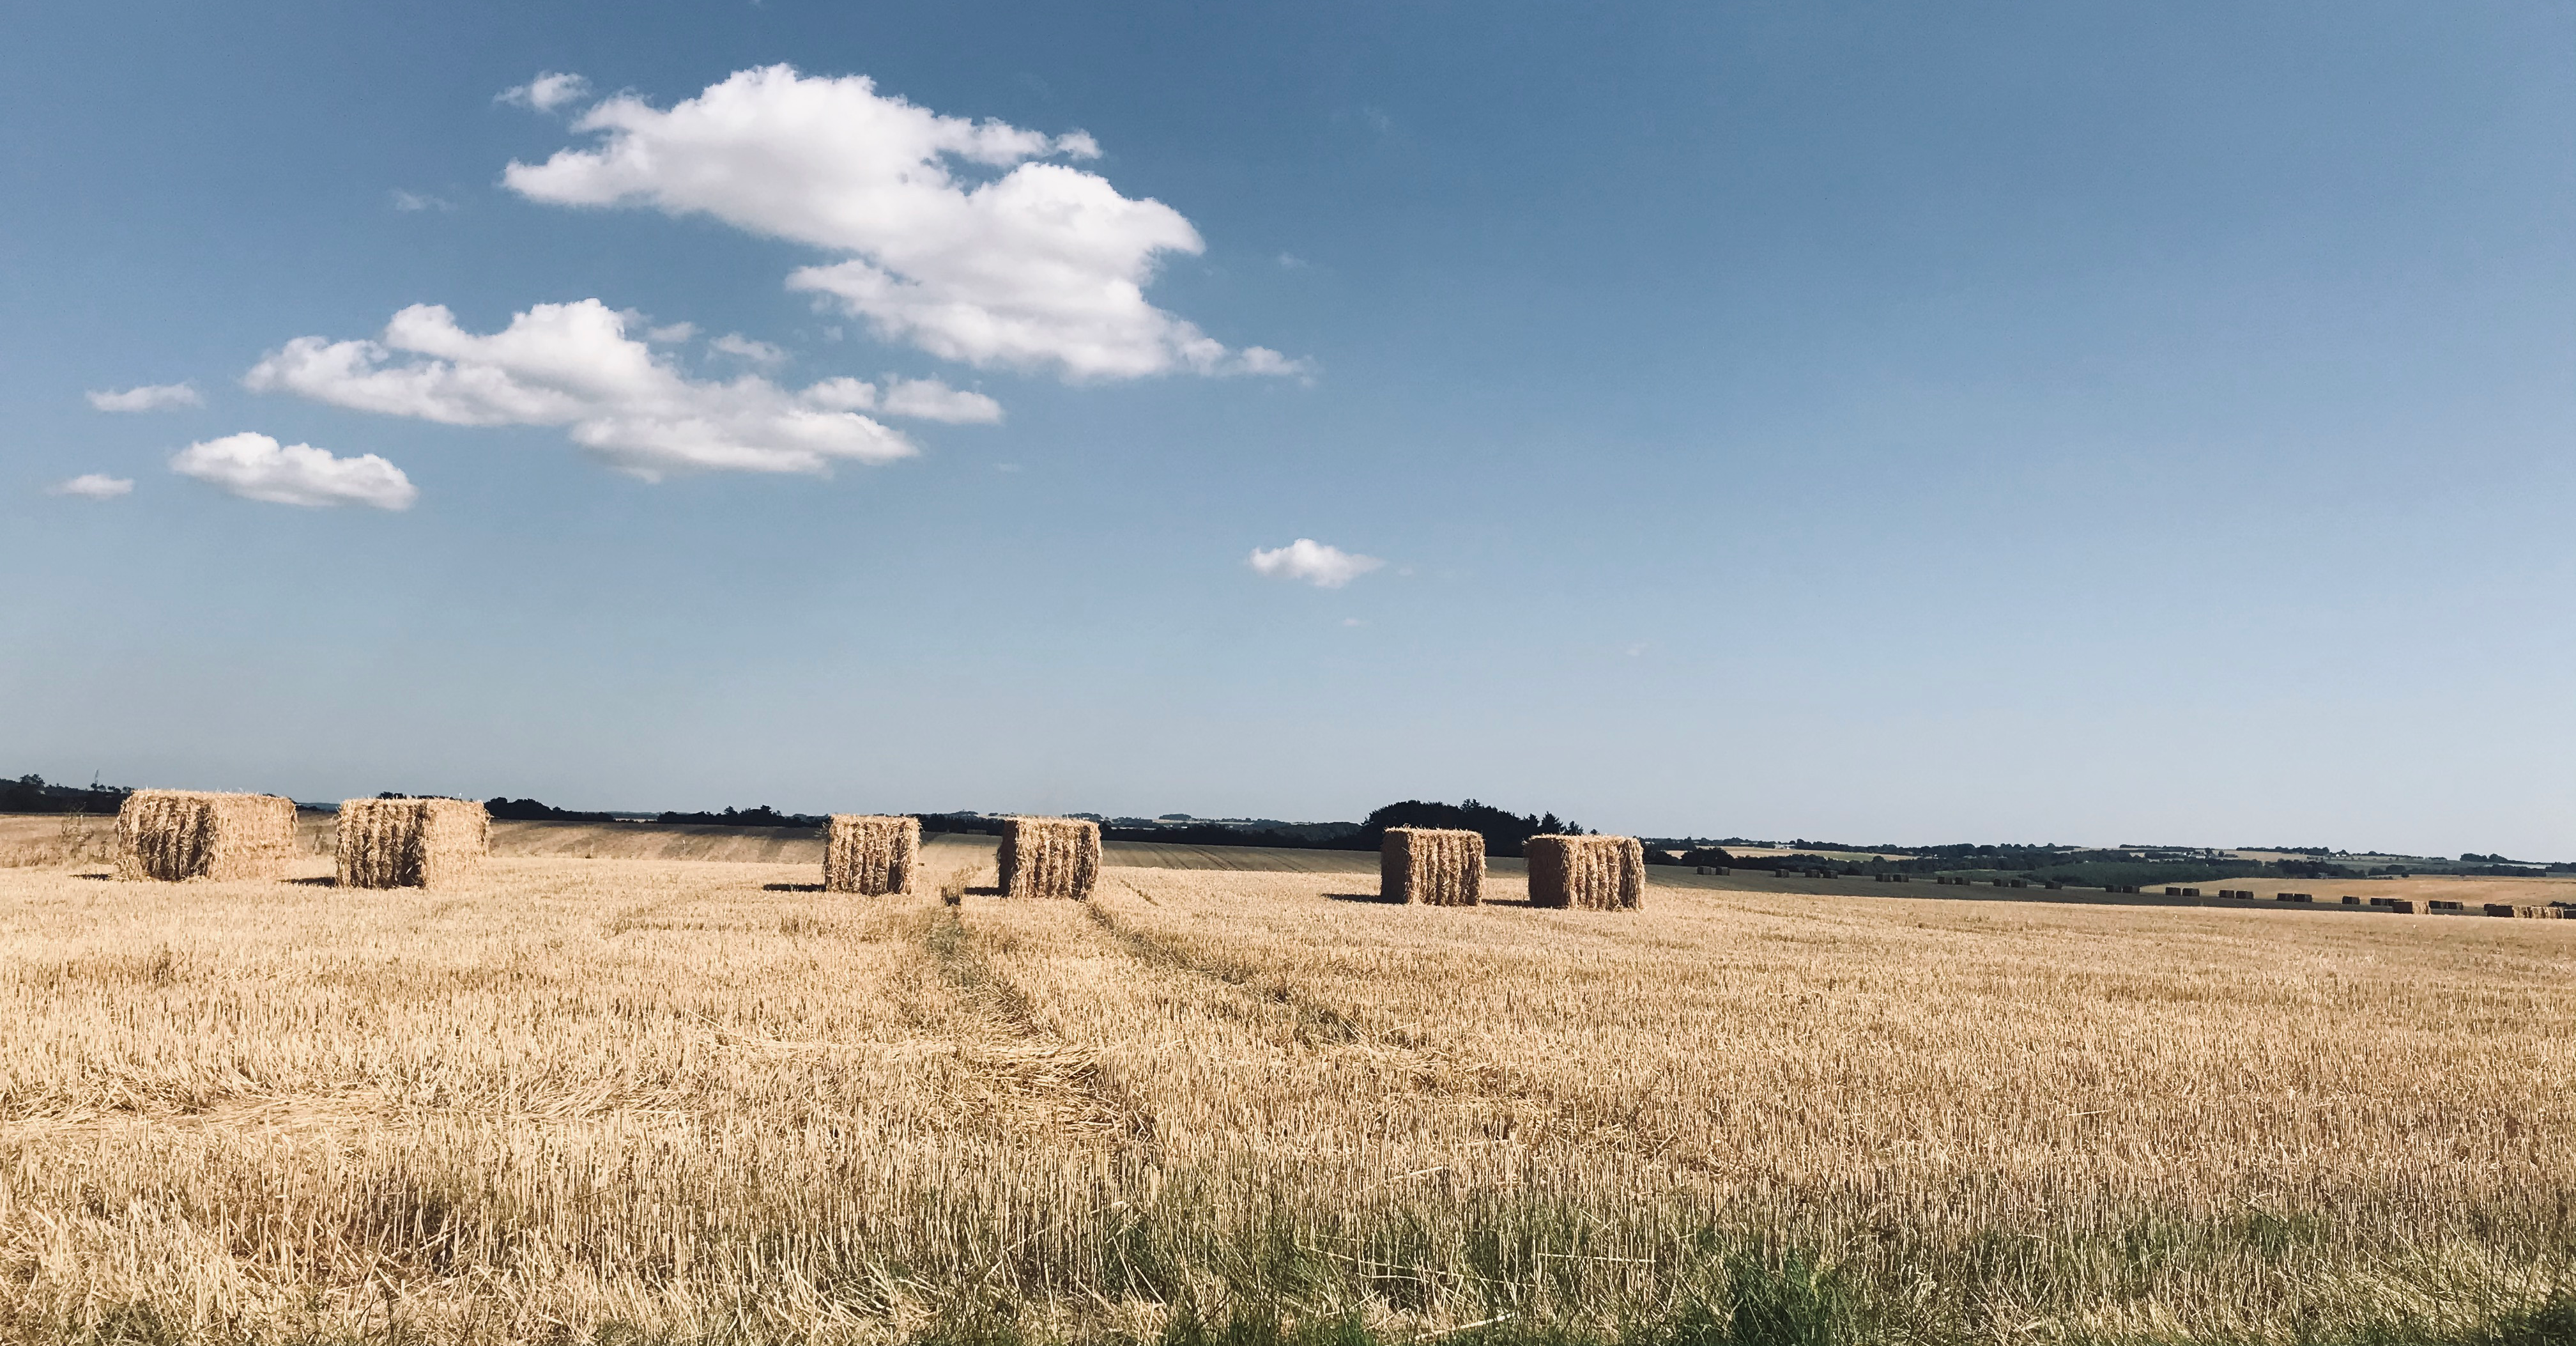 Straw is an important player for future biogas production